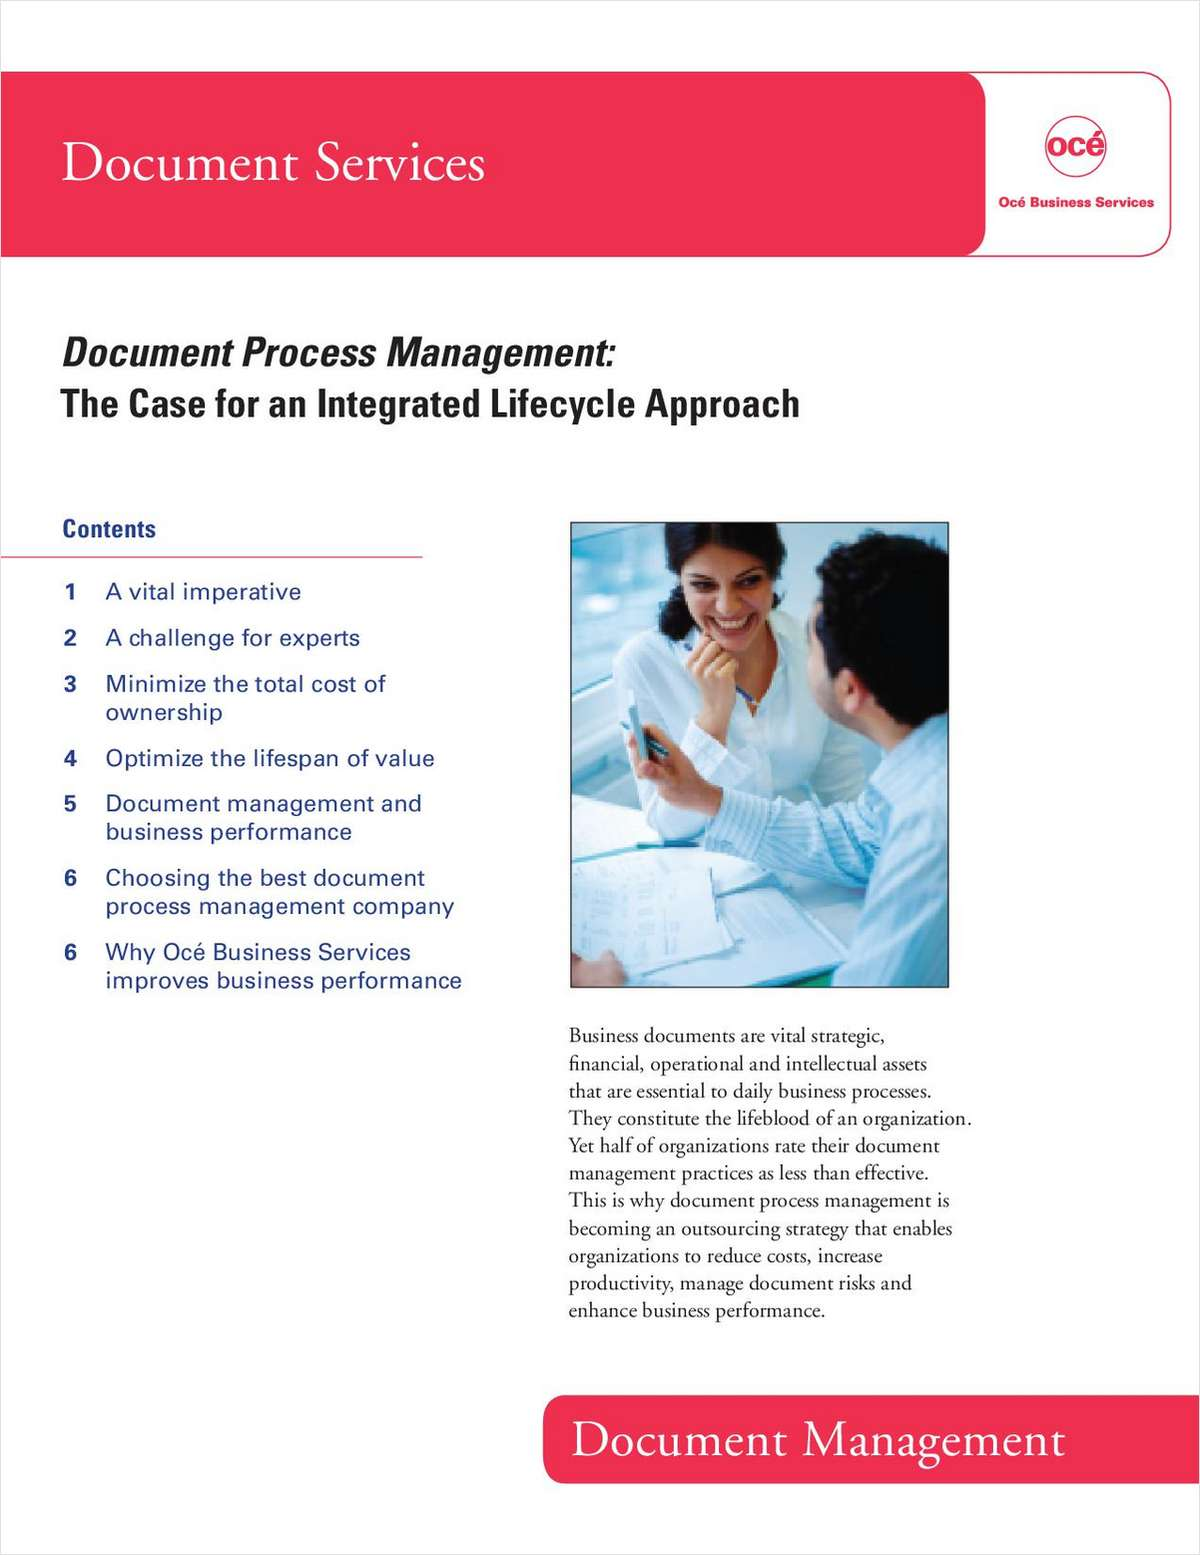 Document Process Management: The Case for an Integrated Lifecycle Approach